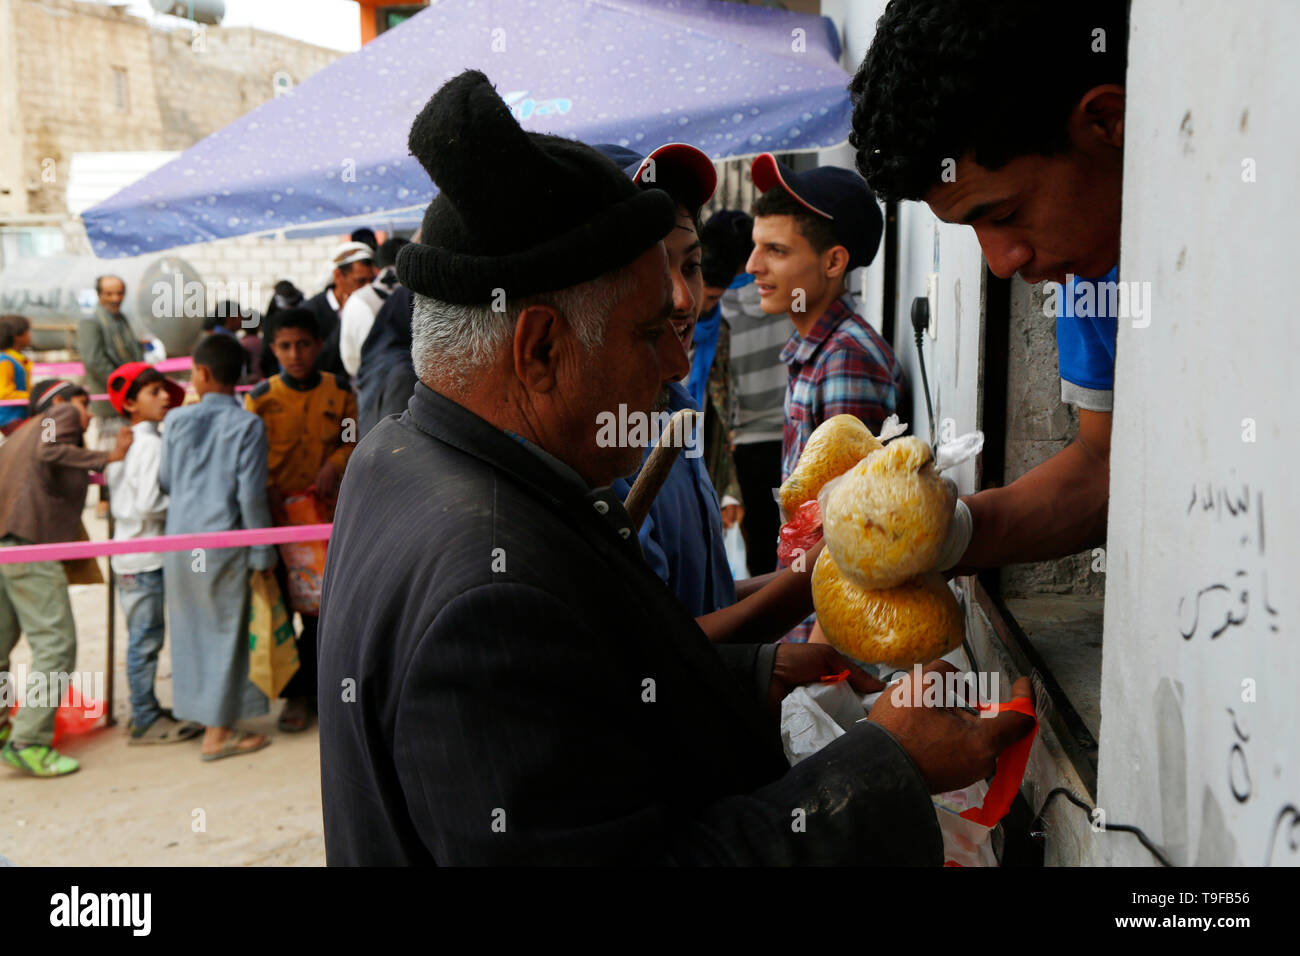 Sanaa, Yemen. 18th May, 2019. A man receives a bag of rice from a charity foundation in Sanaa, Yemen, on May 18, 2019. Ten million Yemenis are still reliant on emergency food assistance to survive, UN Under-Secretary-General for Humanitarian Affairs and Emergency Relief Coordinator Mark Lowcock told the Security Council on May 15. Credit: Mohammed Mohammed/Xinhua/Alamy Live News Credit: Xinhua/Alamy Live News - Stock Image